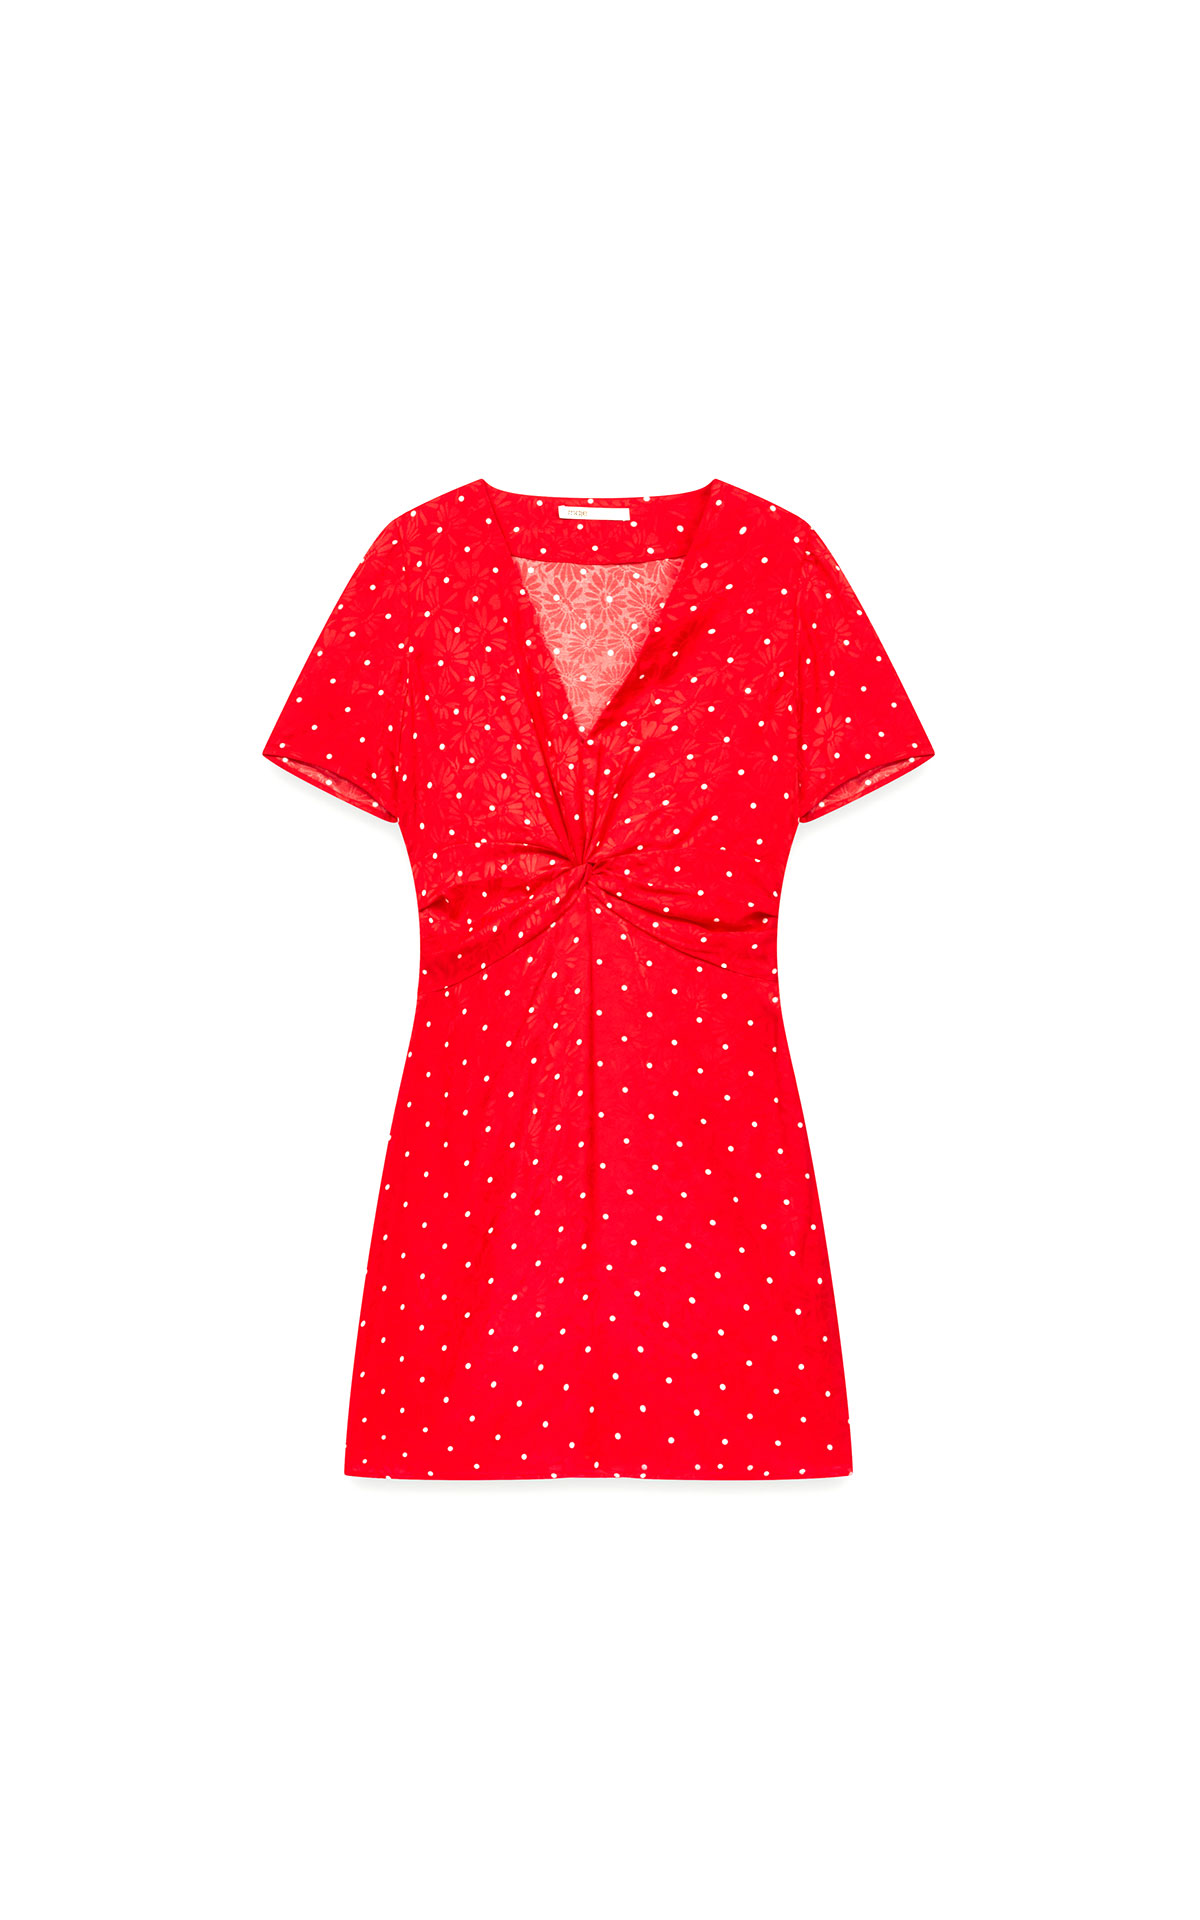 Maje polka dot jacquard dress at The Bicester Village Shopping Collection